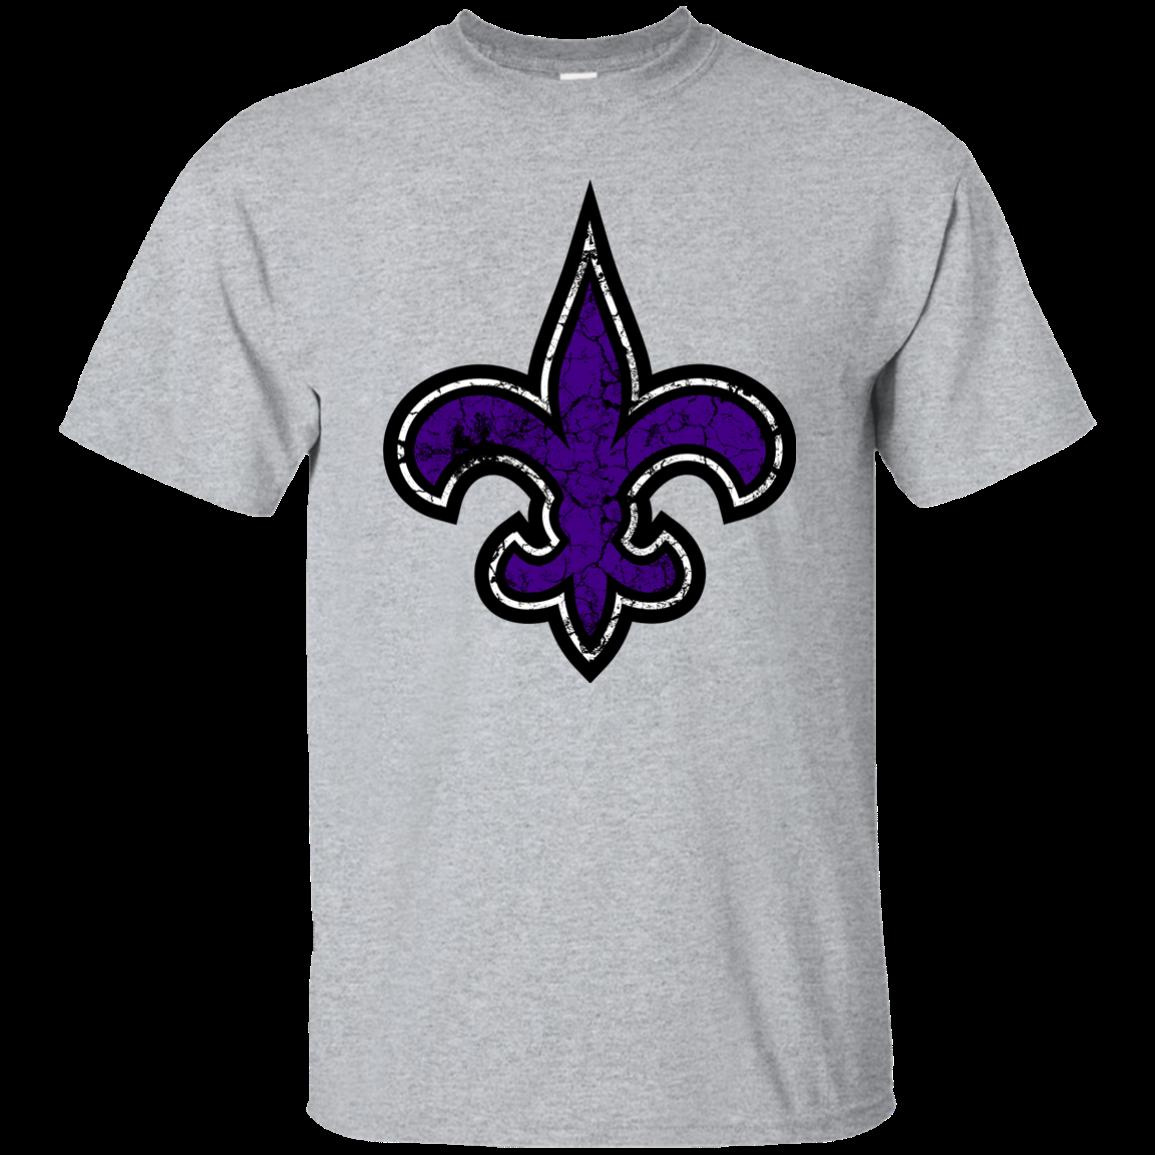 6042b8b4 Fleur de Lis Purple Distressed New Orleans Mardi Gras Tshirt Saints Big  Easy Funny free shipping Unisex Casual